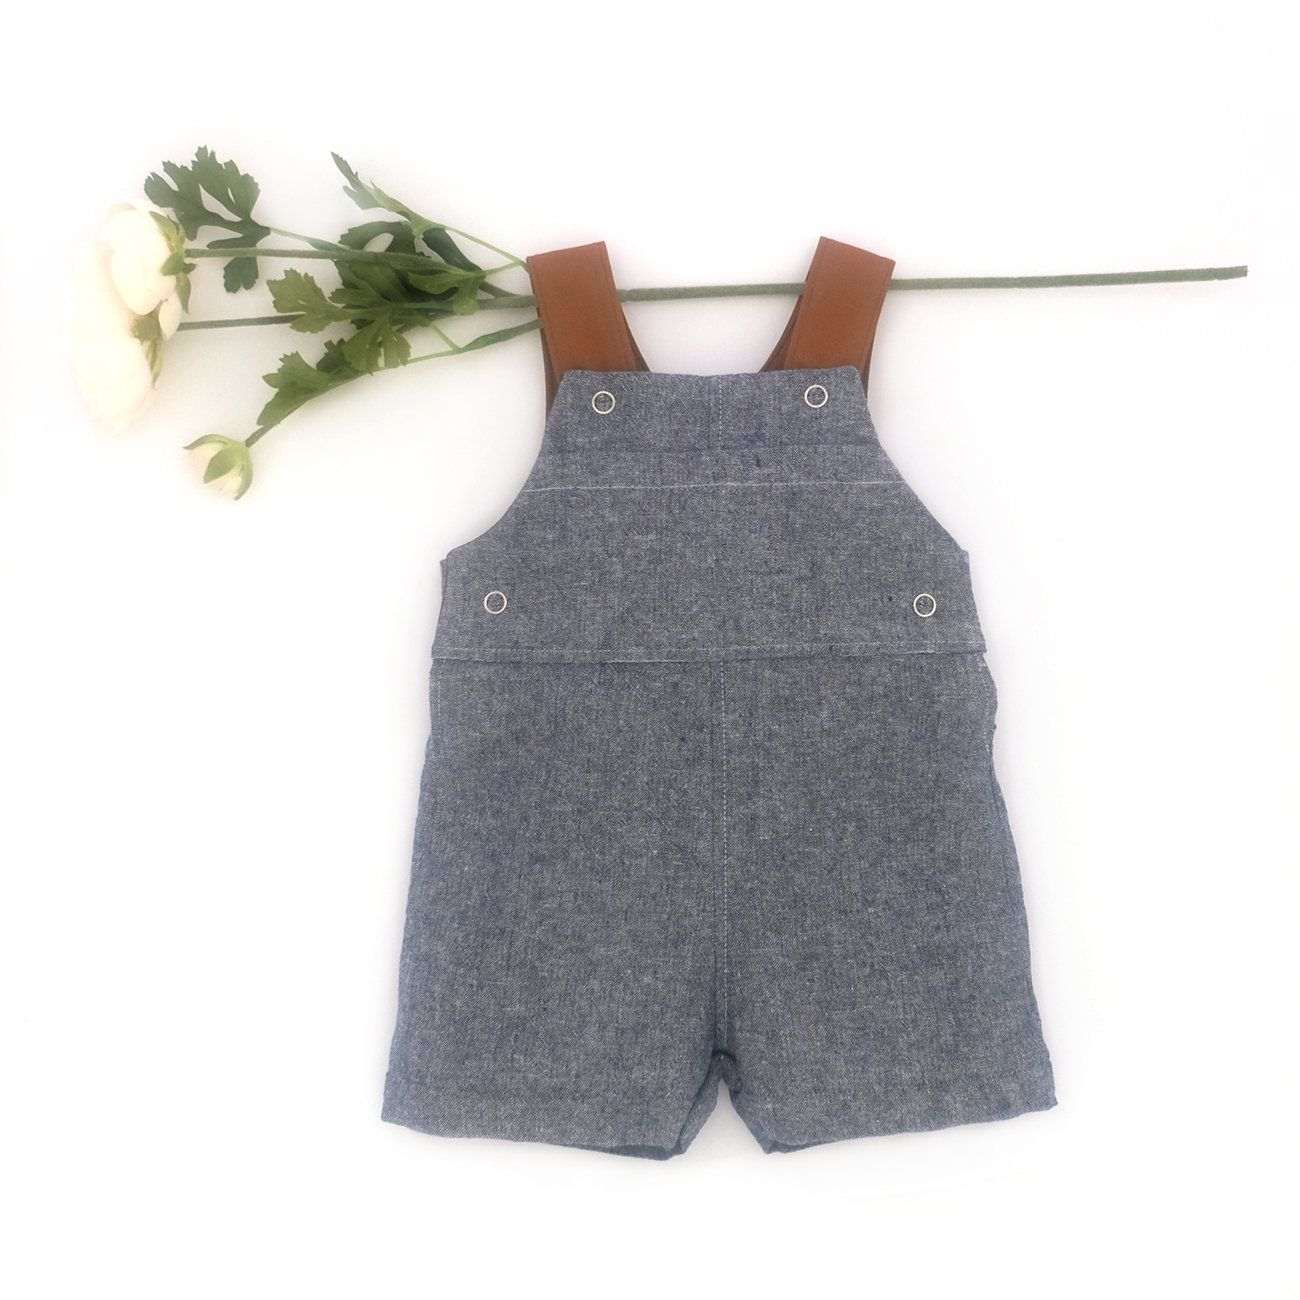 614d14bd3e93 Blue Chambray Overalls   Baby Linen Spring Romper   Vintage Timeless  Toddler Boy Outfit   Classic Infant Playsuit   Photoshoot Kid Shortalls